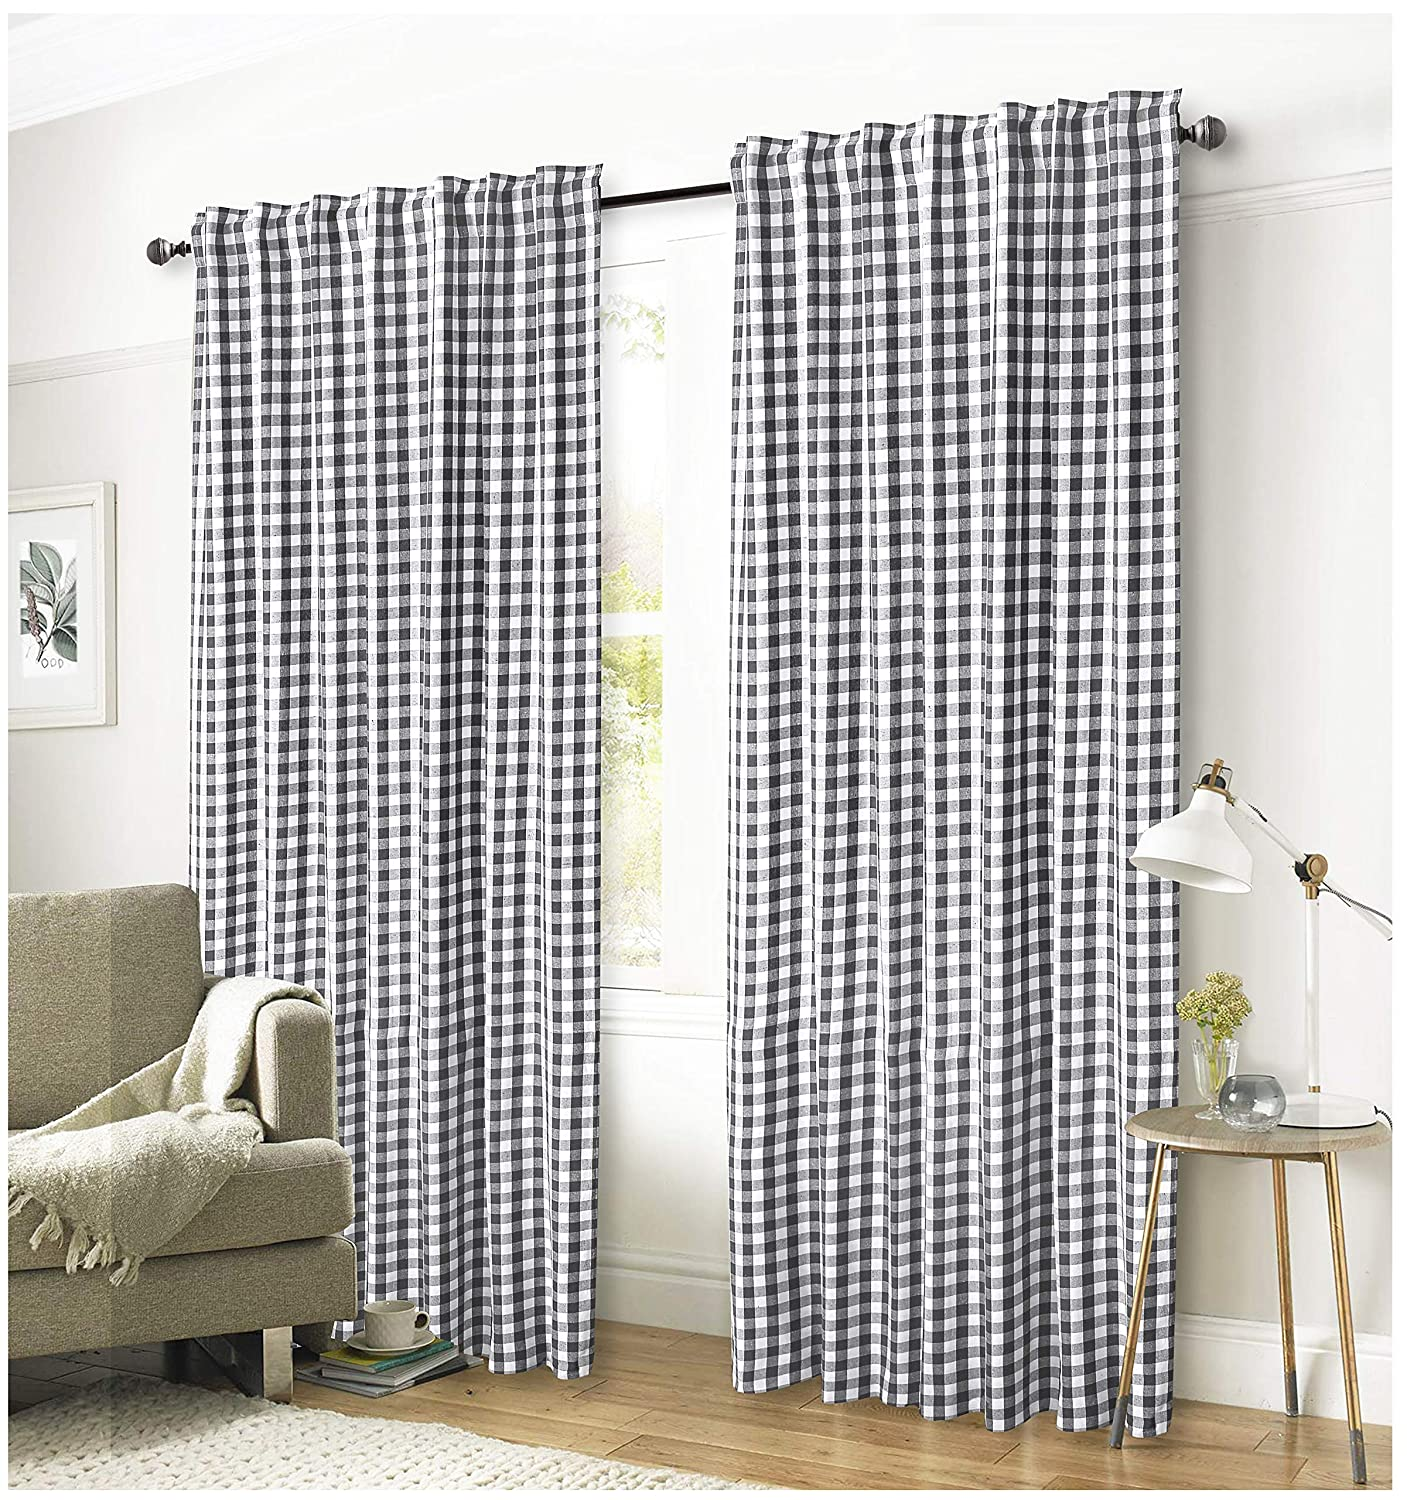 Ramanta Home Gingham Check Window Curtain Panel, 100% Cotton, Charcoal/White, Cotton Curtains, 2 Panels Curtain, Tab Top Curtains, 50x96 Inches, Set of 2